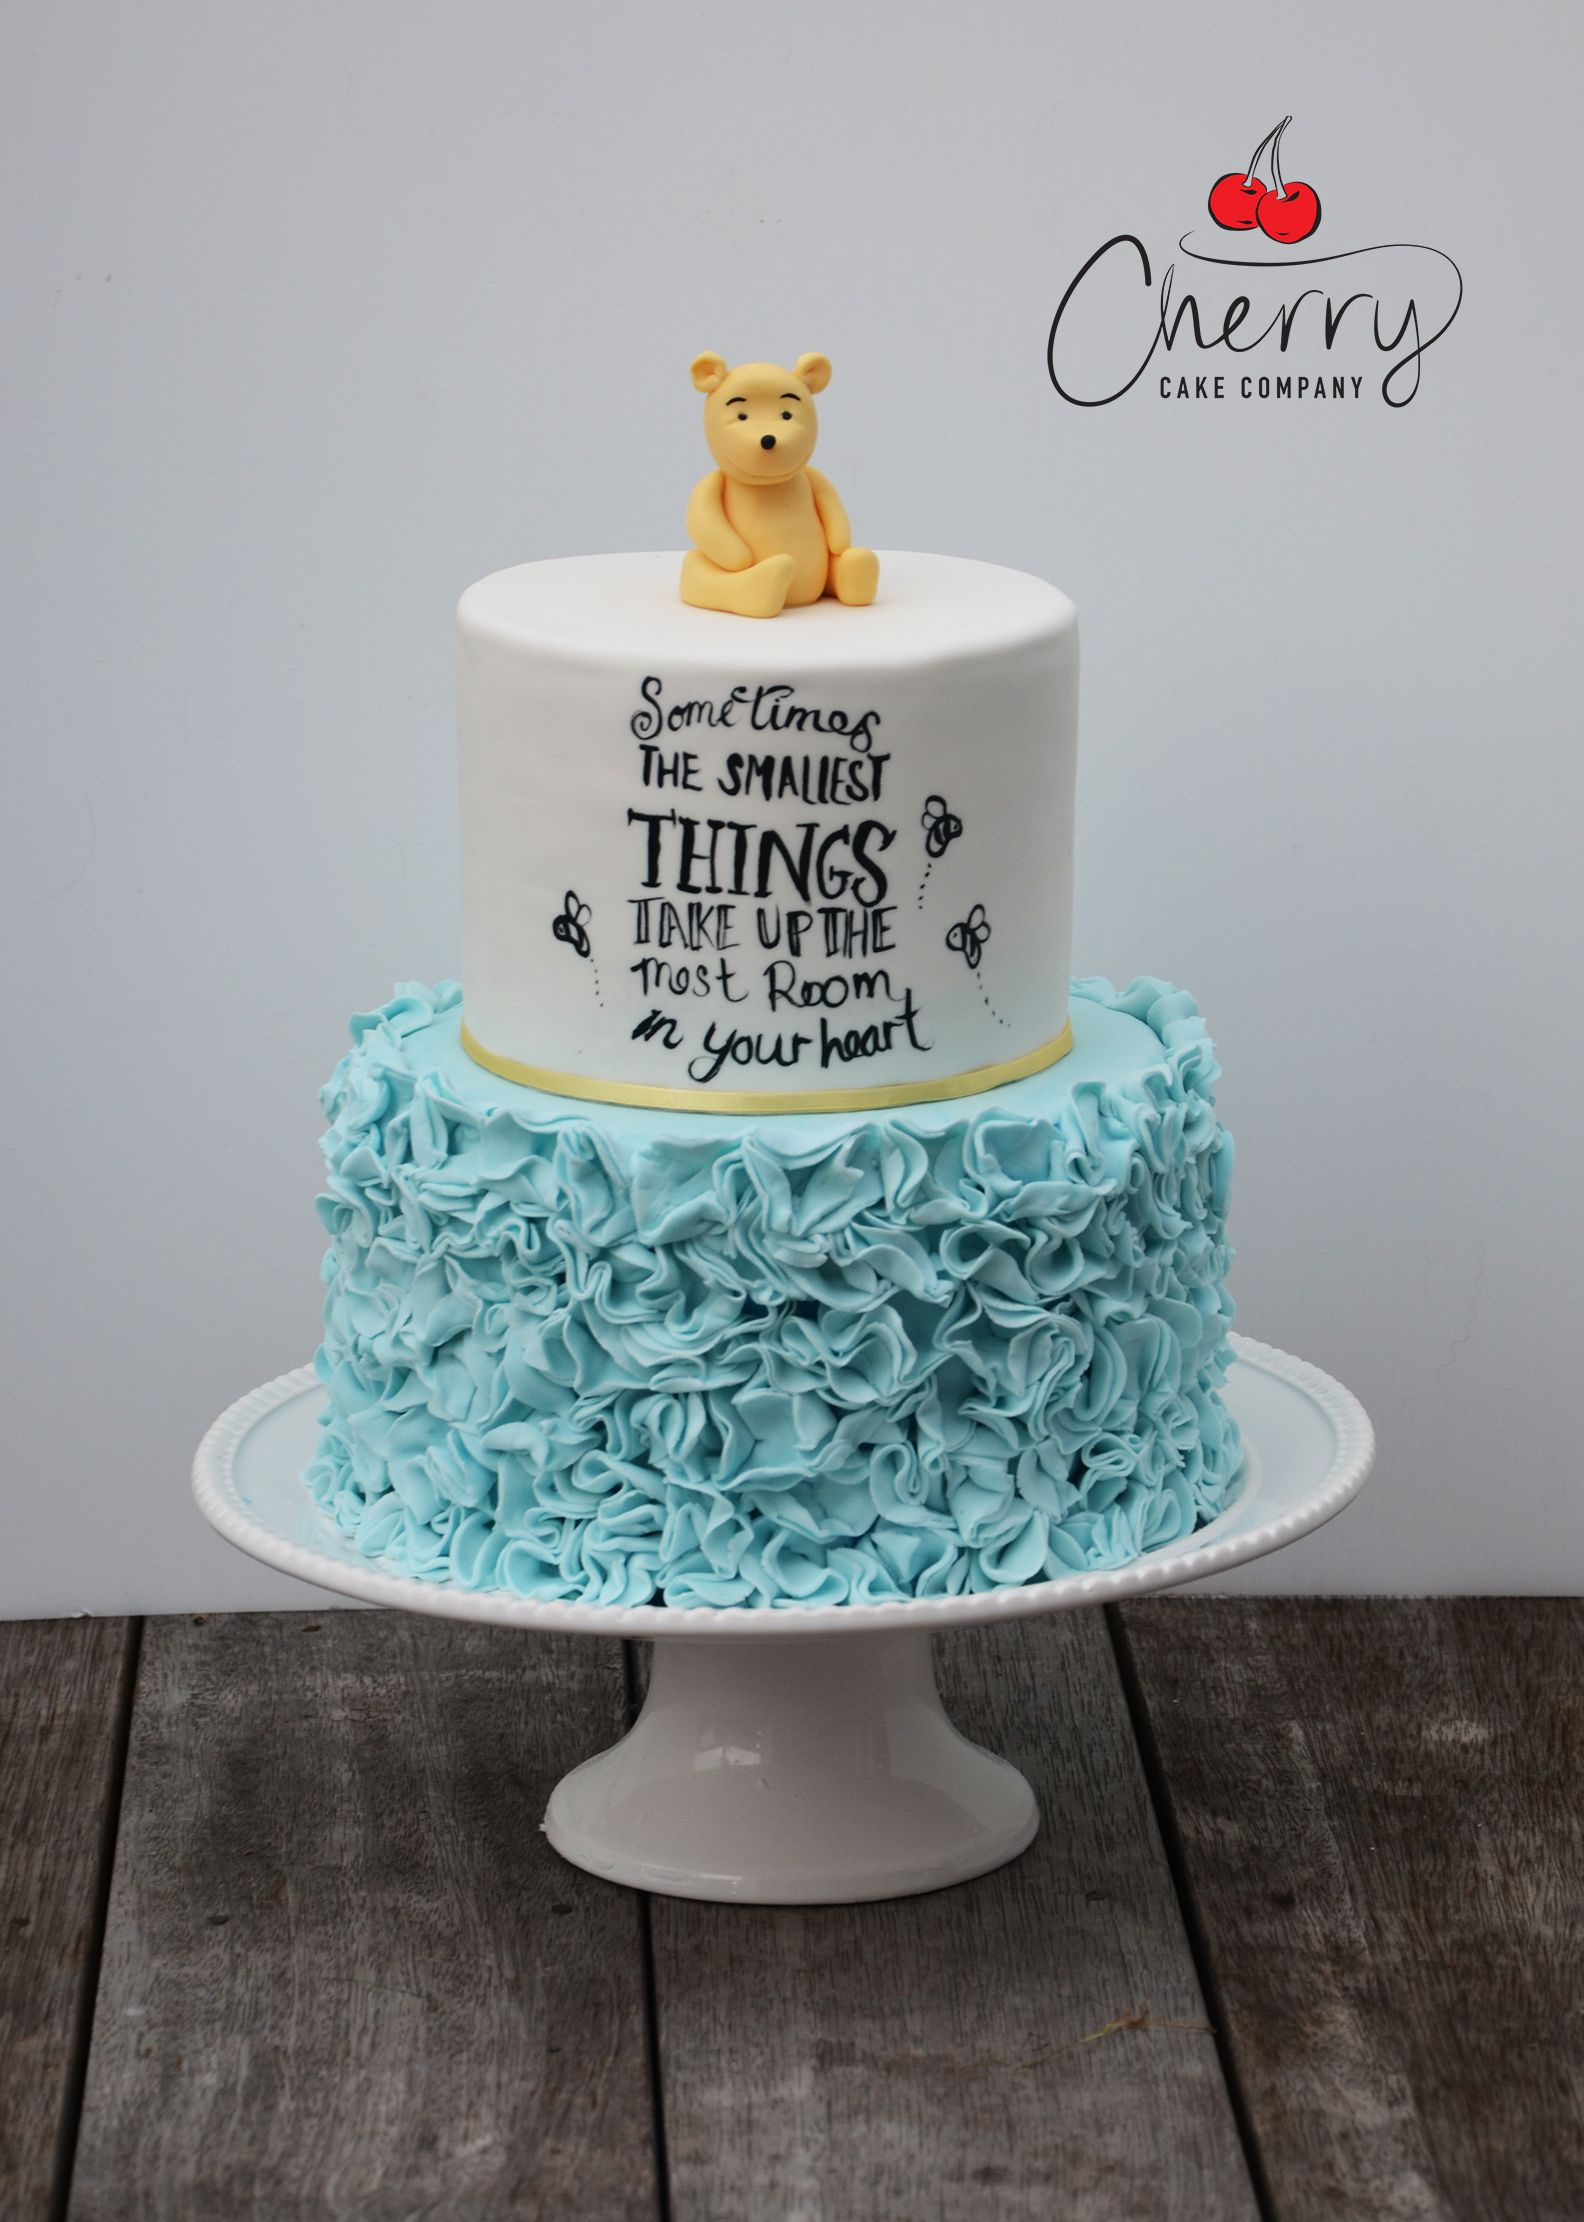 Fabulous Cute Winnie The Pooh Baby Shower Cake With Ruffles | Tiny Human inside Unique Winnie The Pooh Baby Shower Cakes